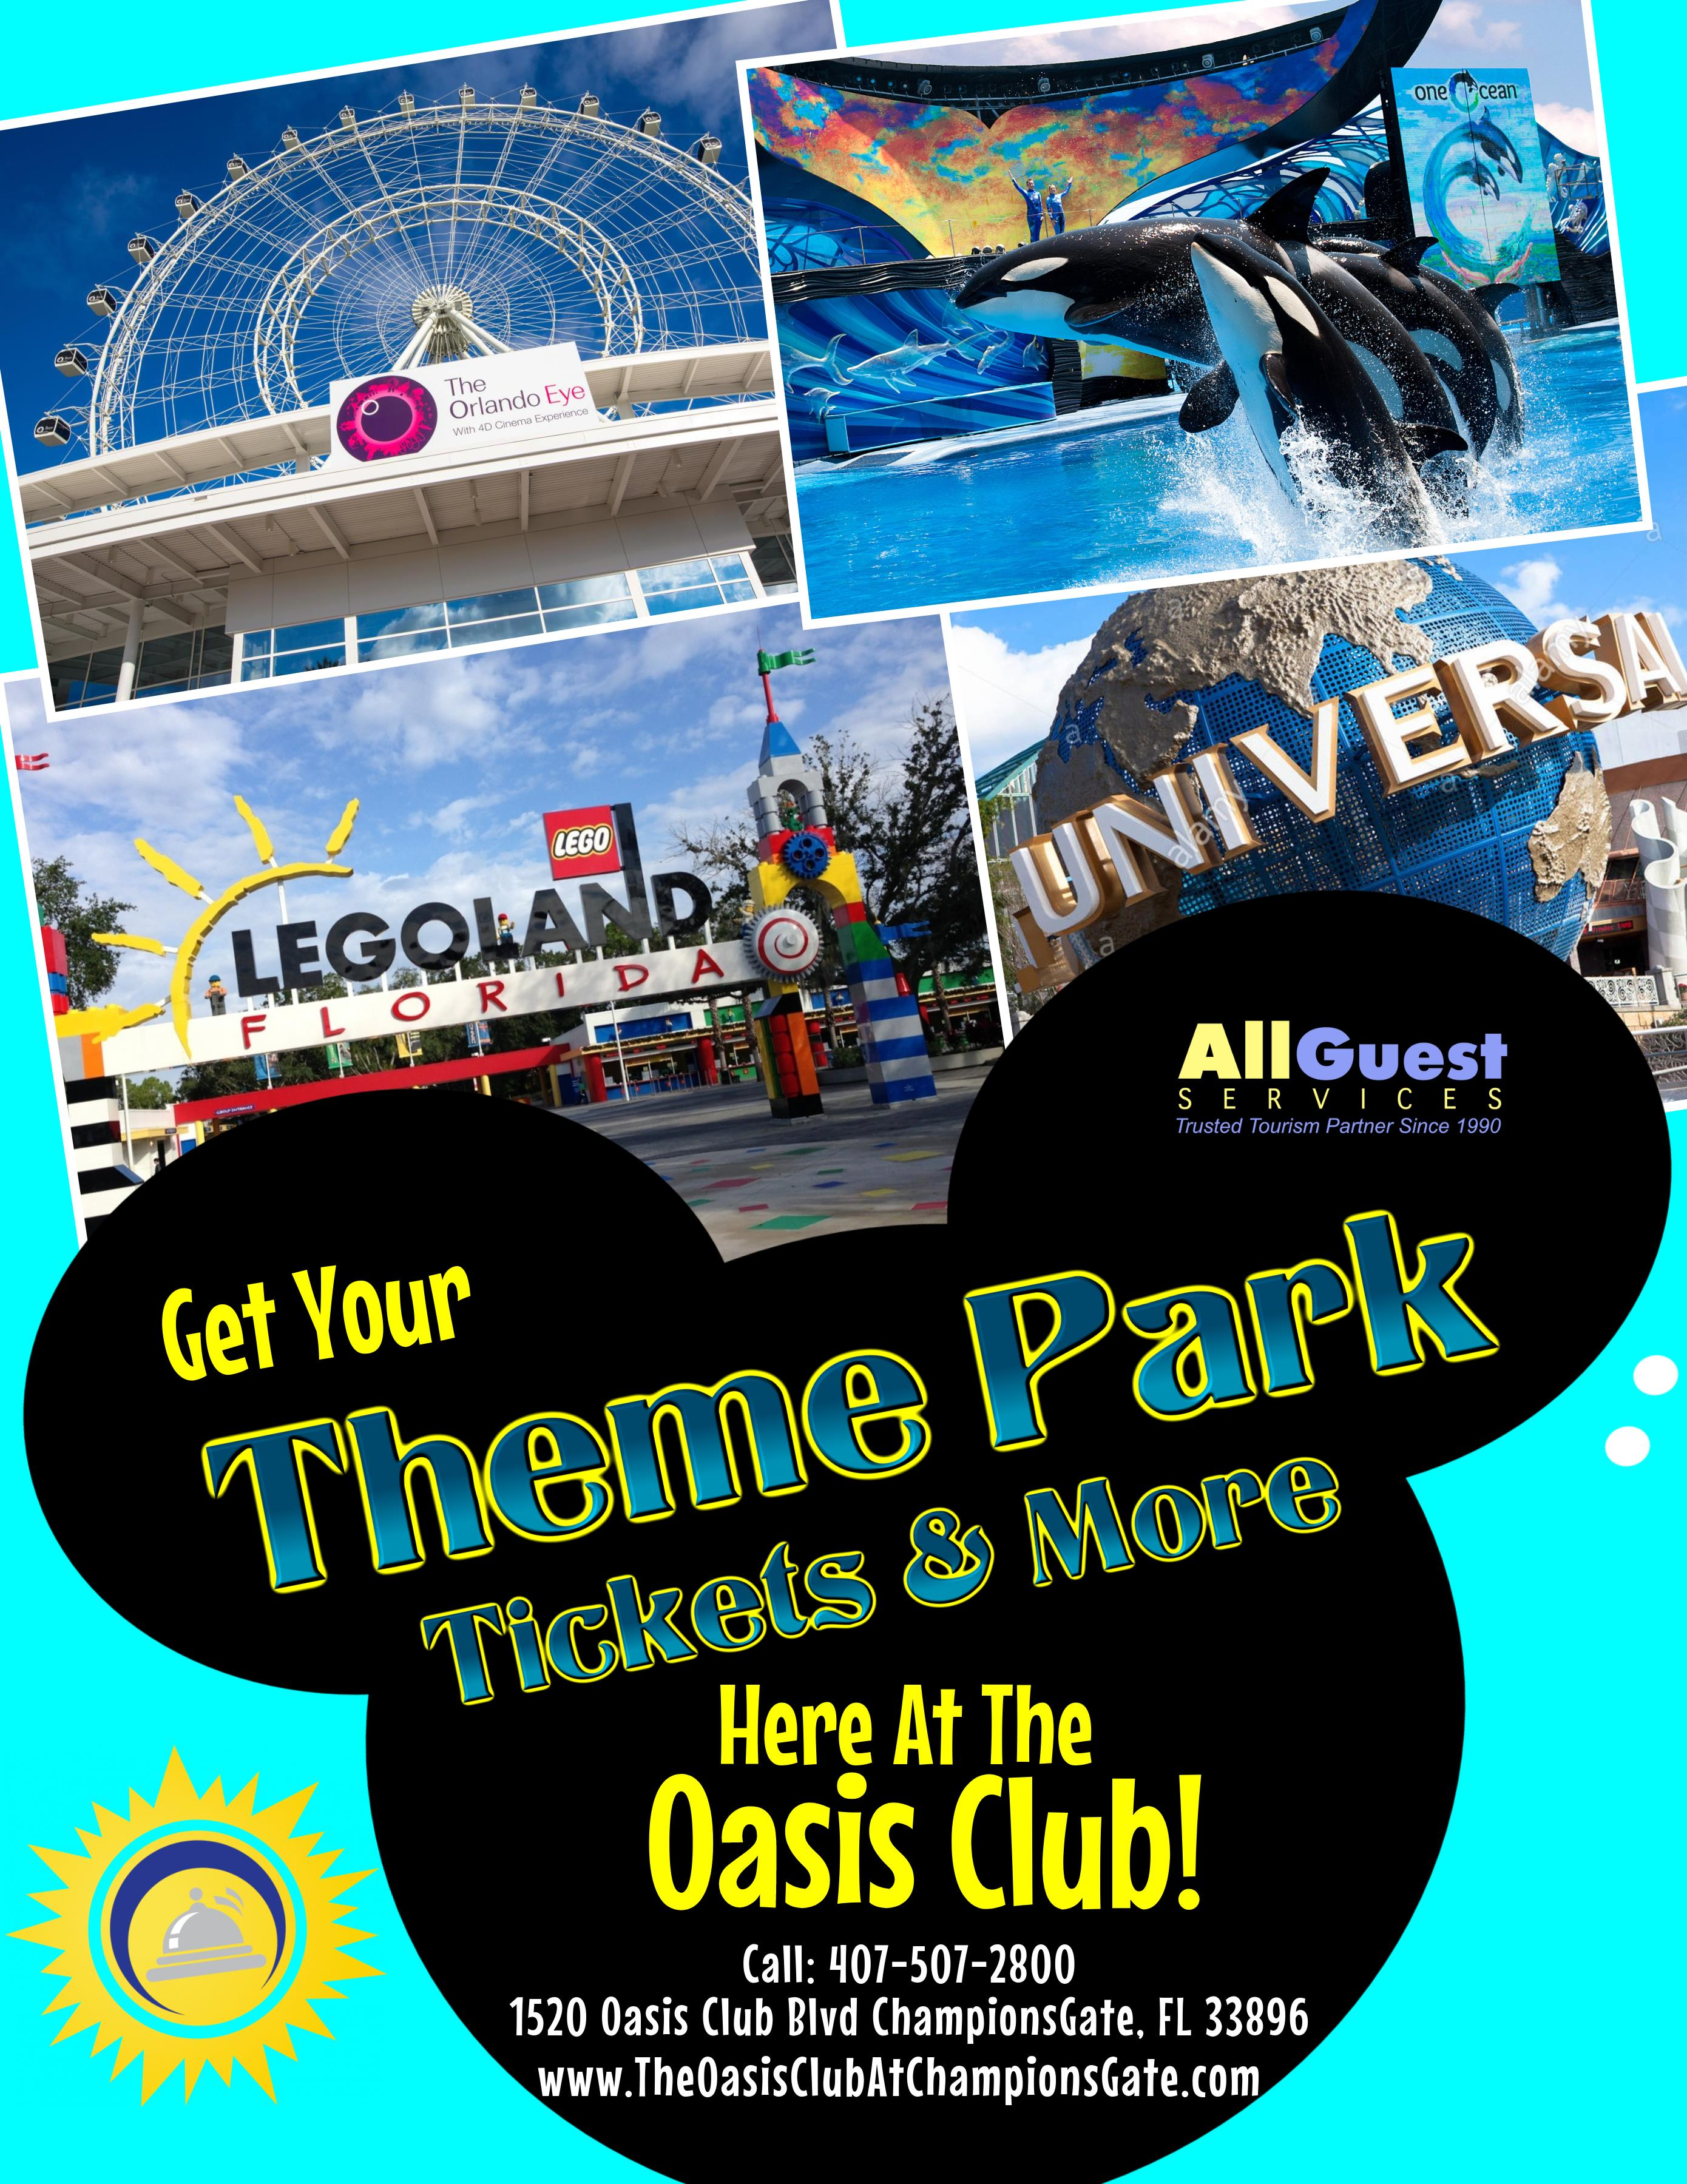 Get Your Theme Park Tickets & More Here at the Oasis Club! Call: 407-507-2800 1520 Oasis Club Blvd ChampionsGate, FL 33896 www.TheOasisClubAtChampionsGate.com